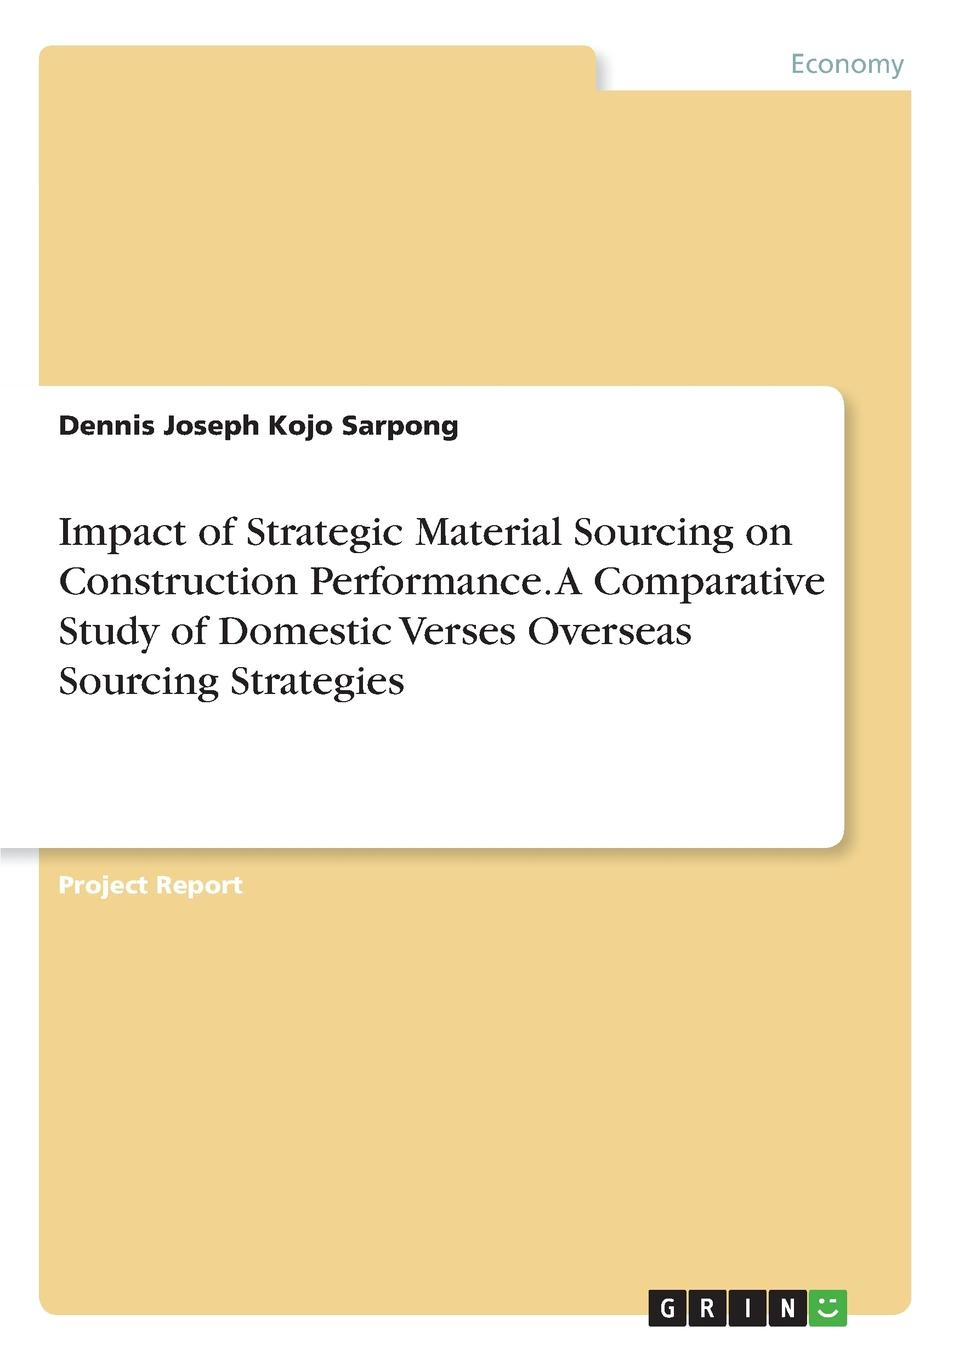 Dennis Joseph Kojo Sarpong Impact of Strategic Material Sourcing on Construction Performance. A Comparative Study of Domestic Verses Overseas Sourcing Strategies